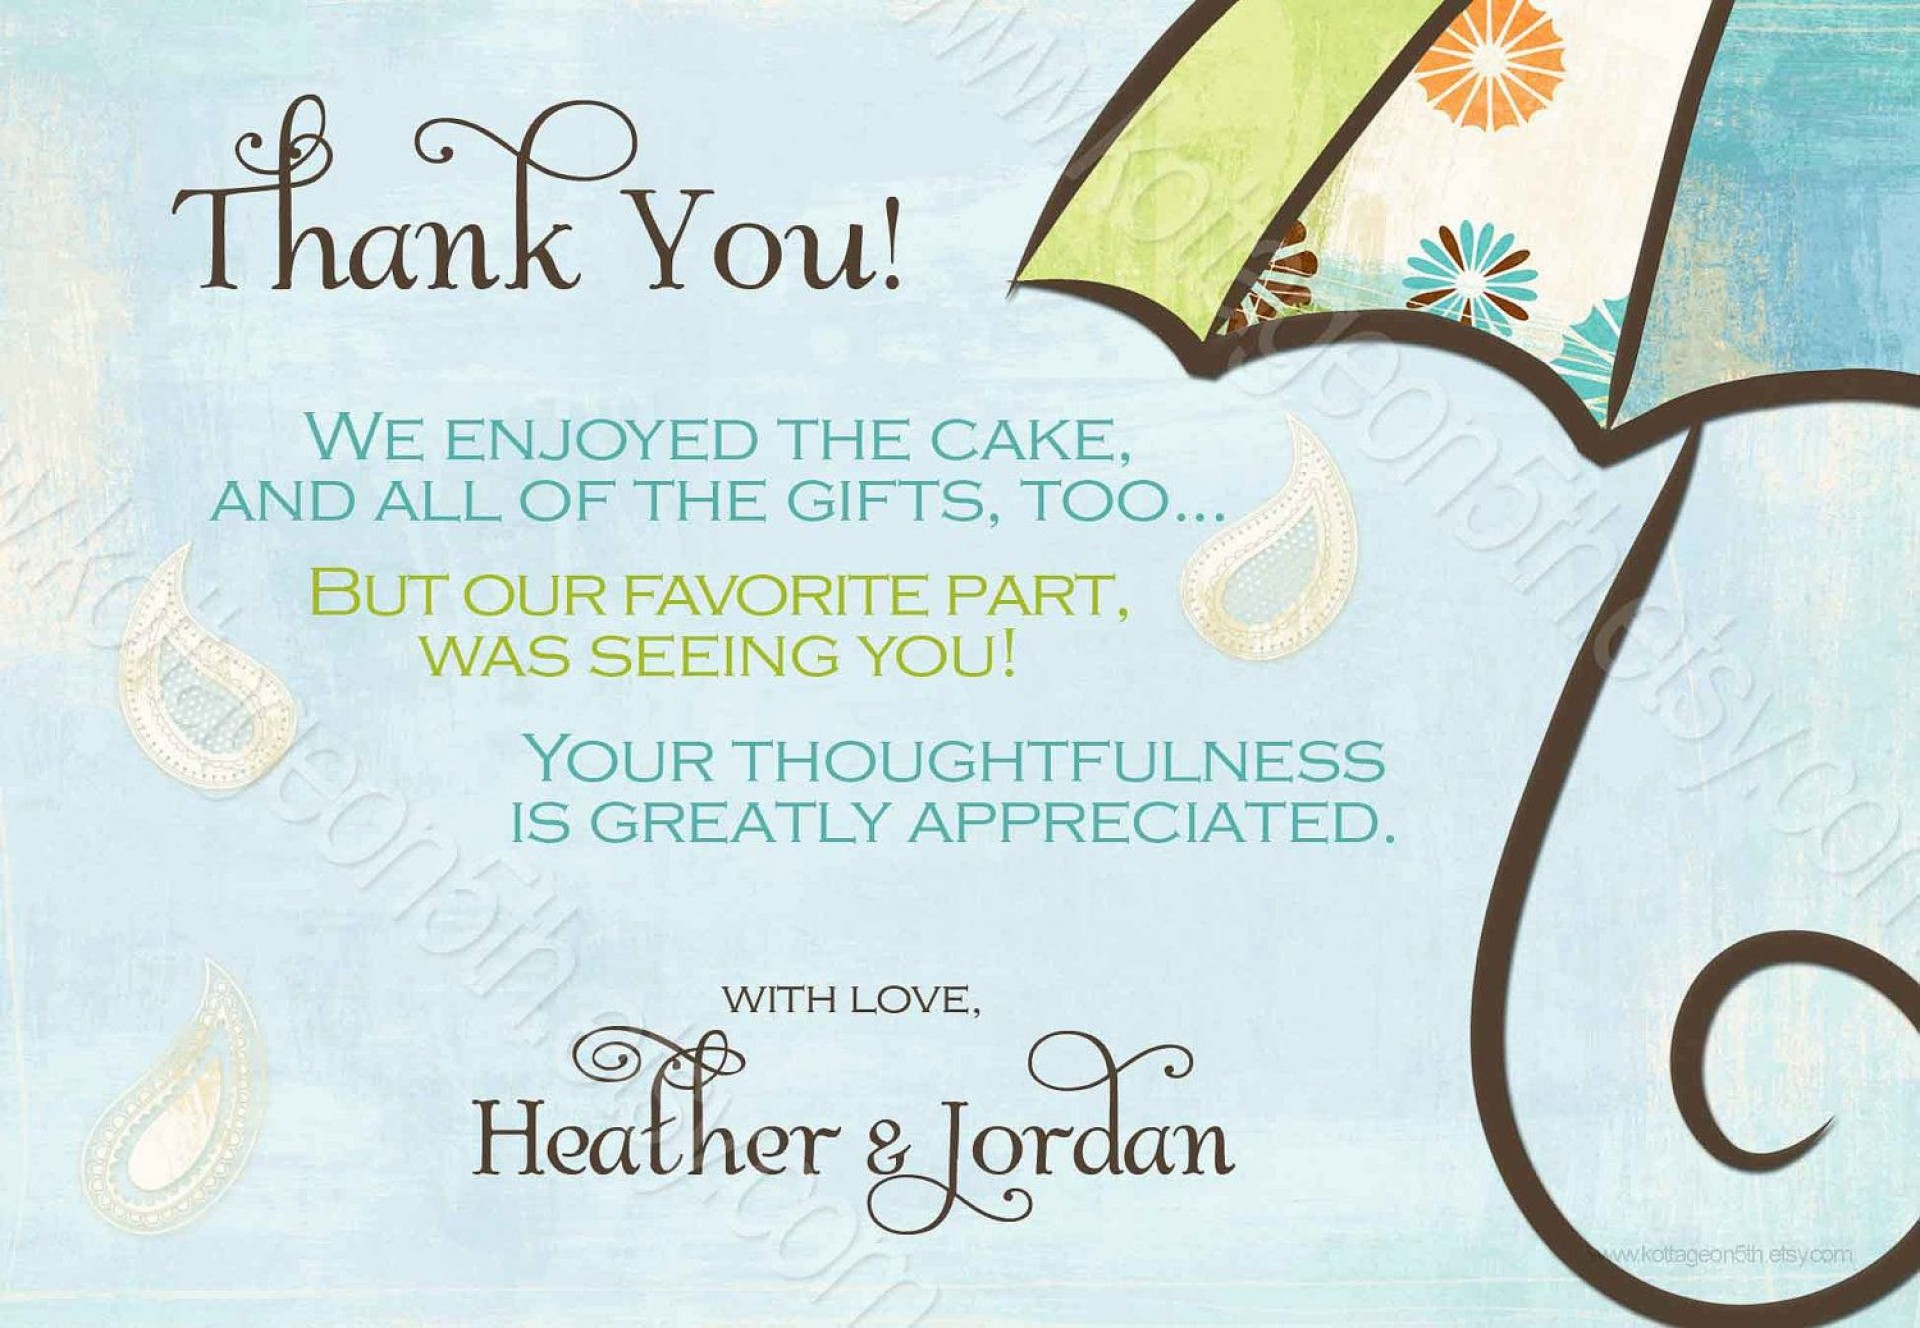 008 Magnificent Thank You Card Wording Baby Shower Gift High Resolution  For Multiple Group1920